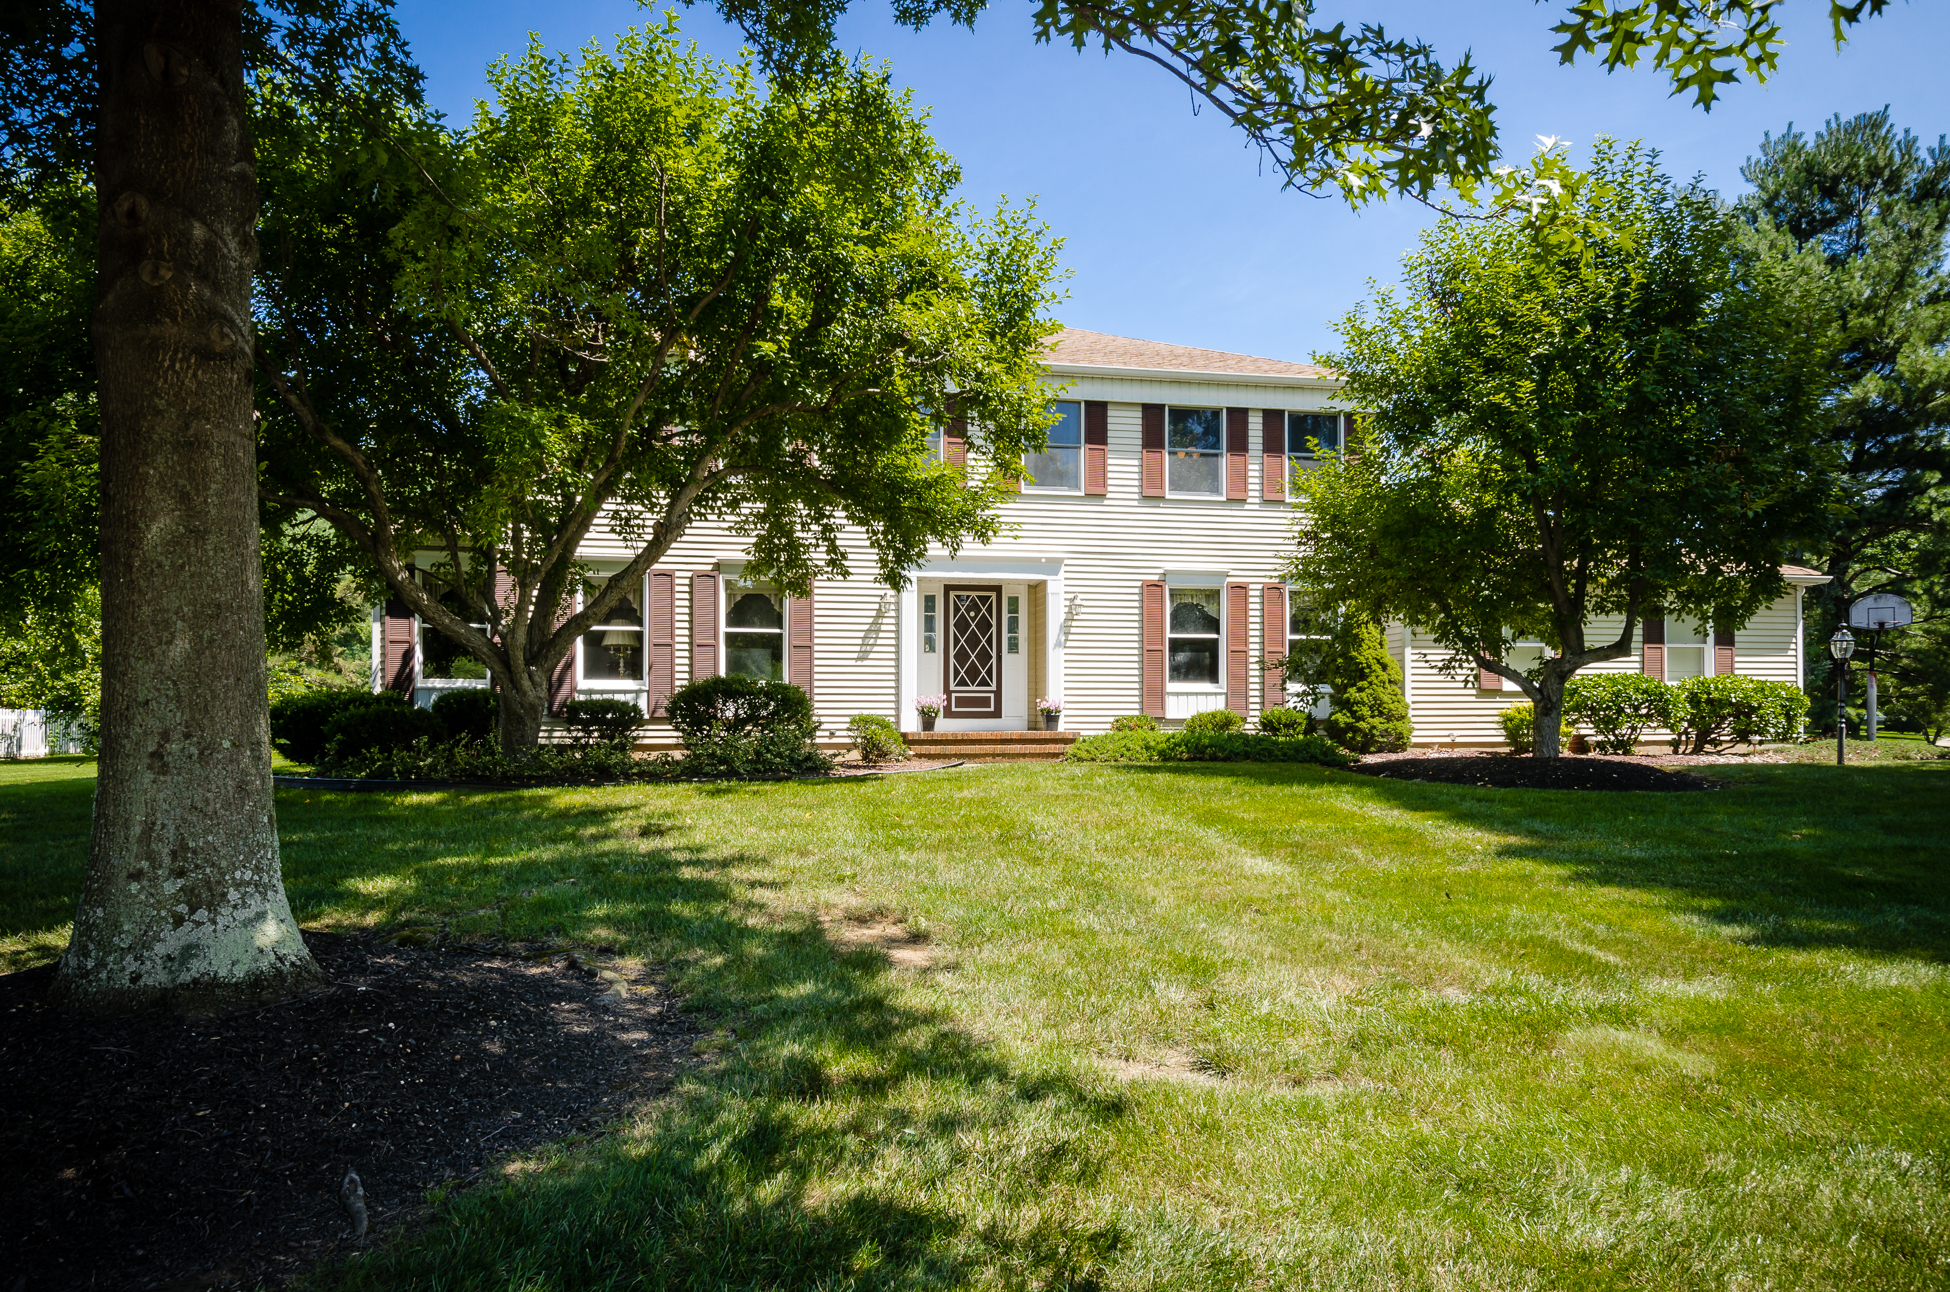 Property For Sale at Classic Colonial Home Surrounded by Towering and Majestic Oak Trees